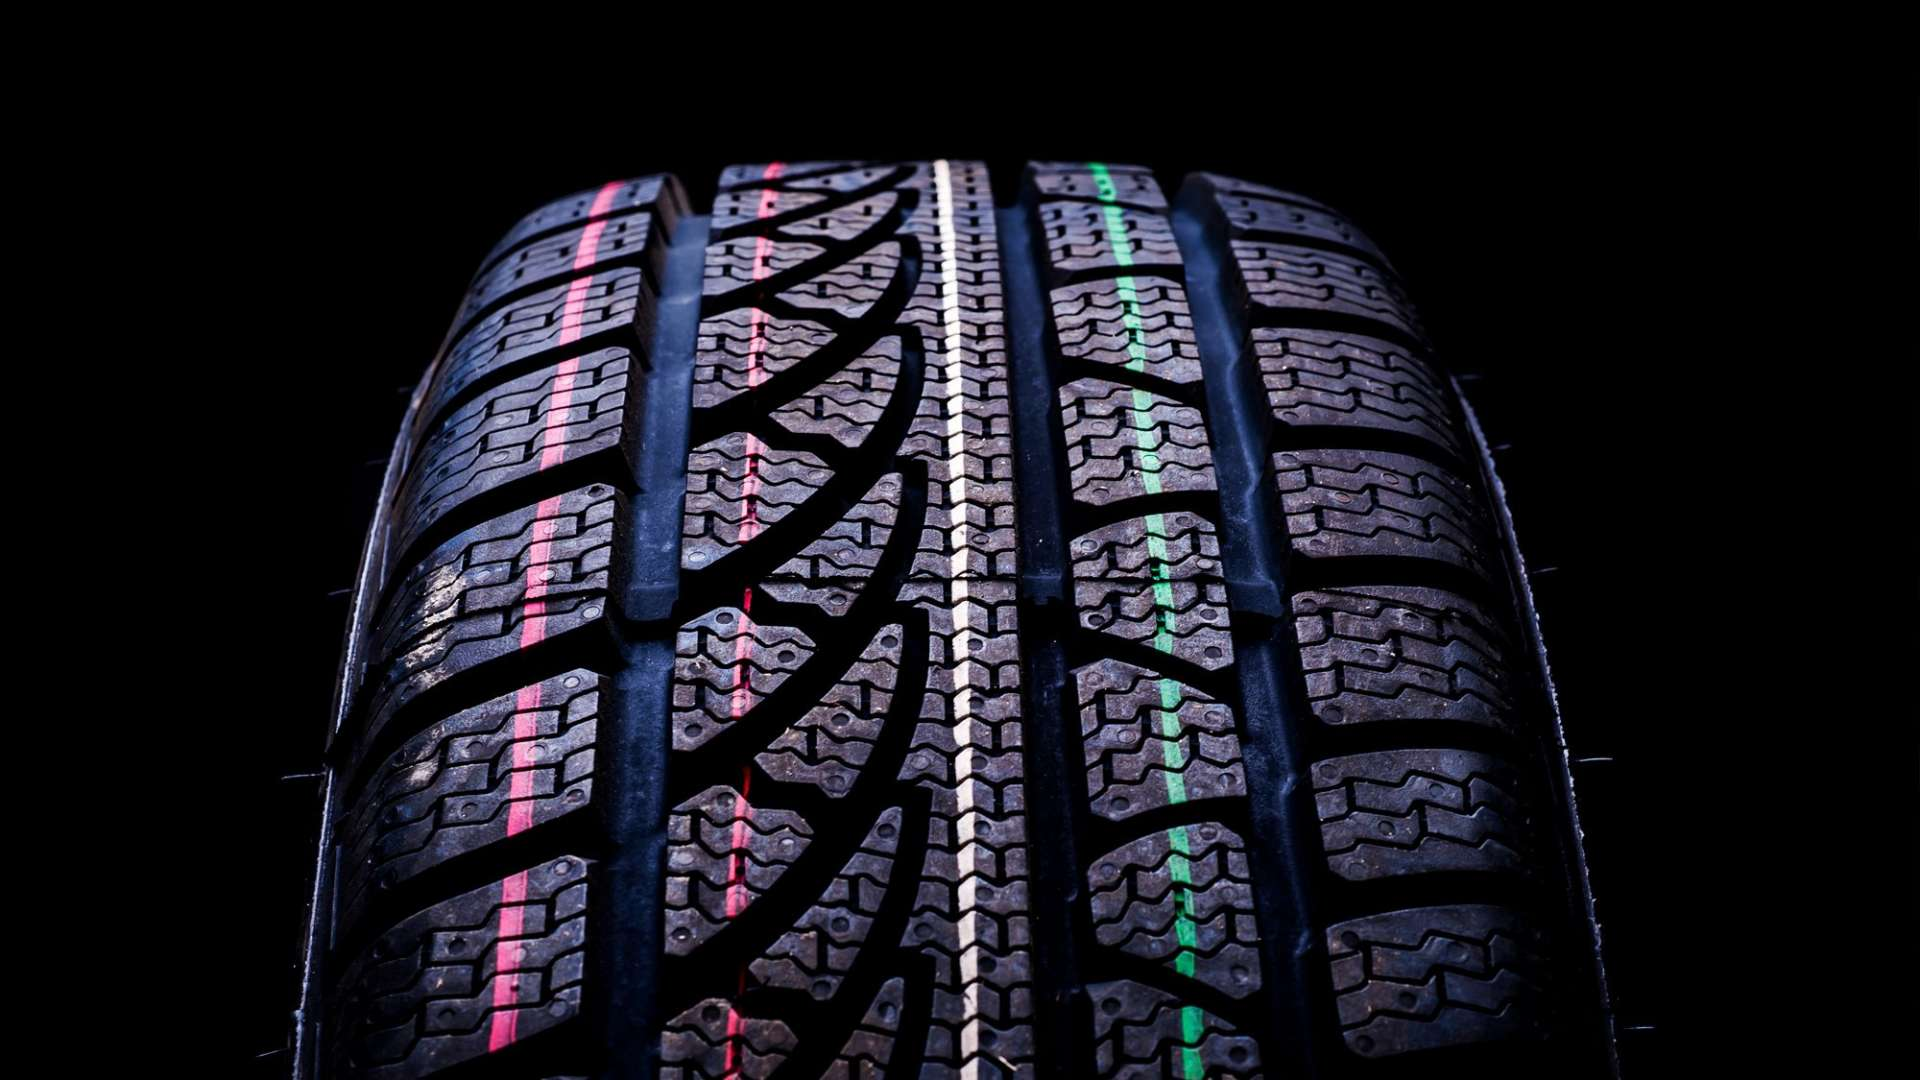 Photo of a car tyre